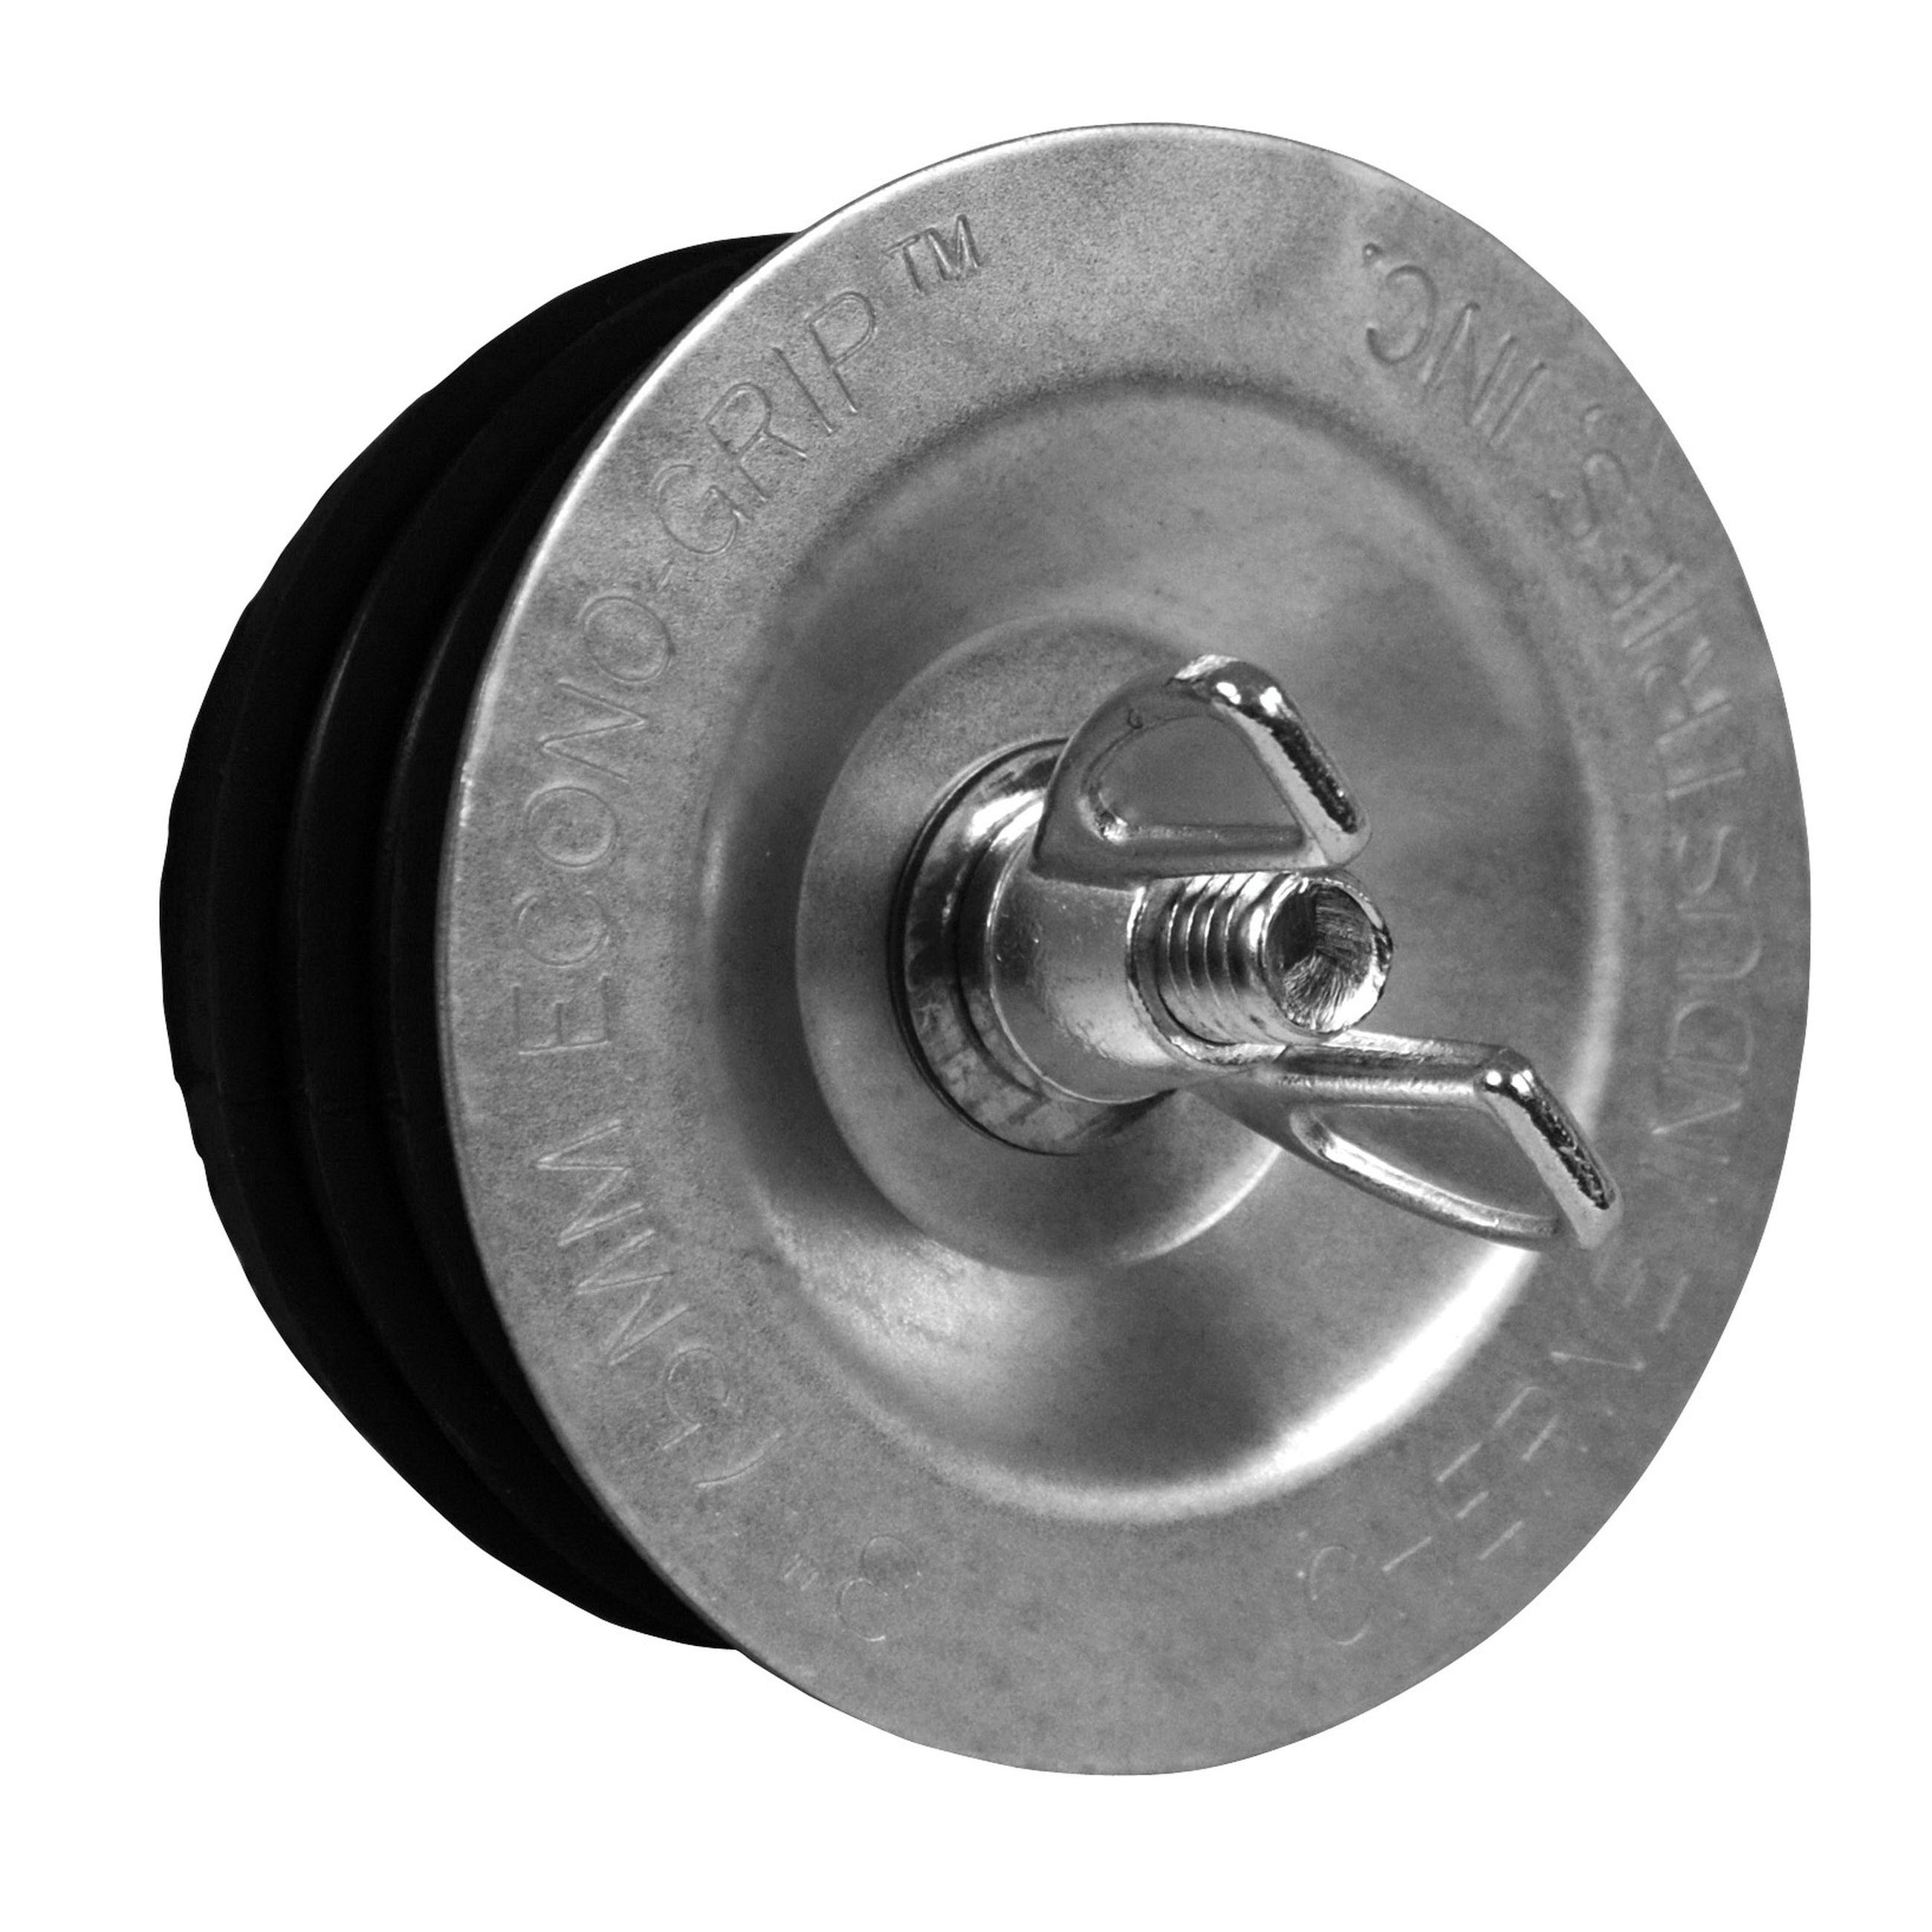 Cherne® Econ-O-Grip® 271-535 Galvanized Black Steel Cap/Natural Rubber O-Ring Mechanical Wing Nut Test Plug, 3 in